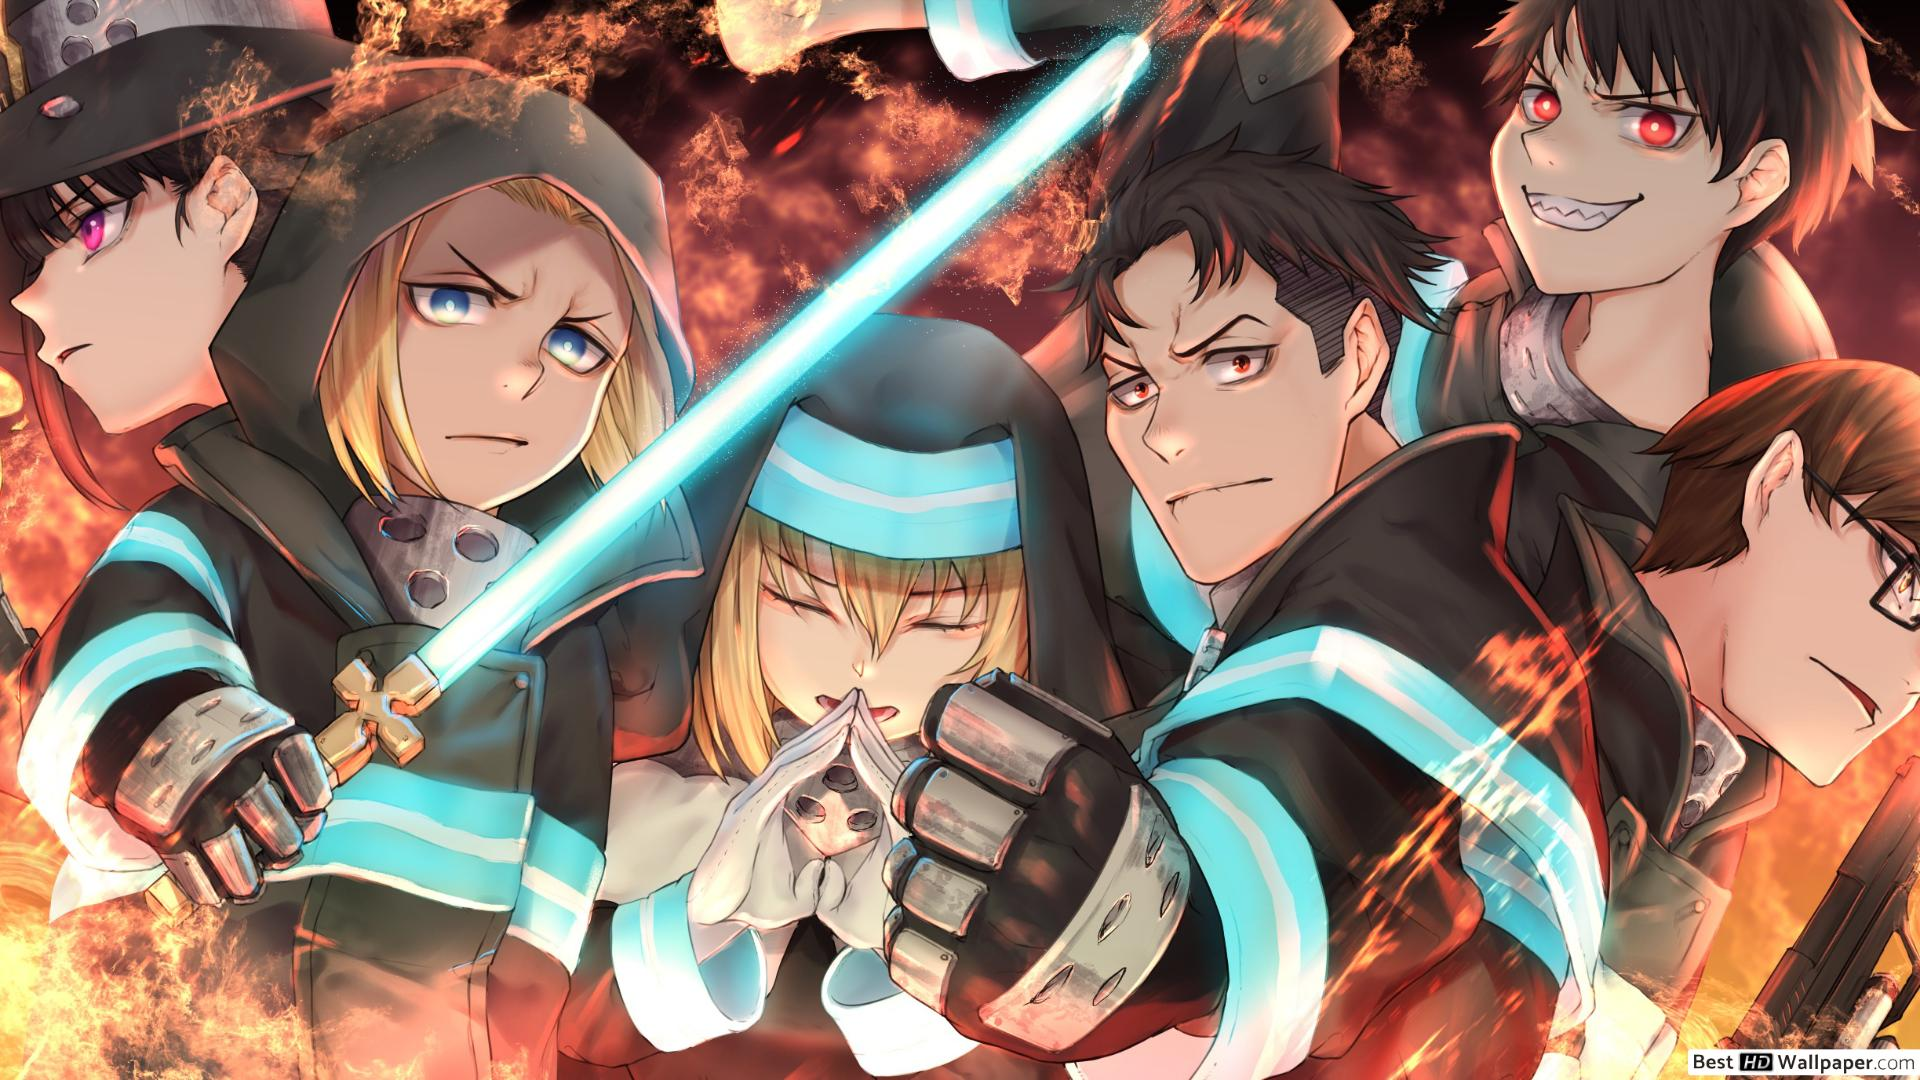 Fire Force Wallpaper 4k 1920x1080 Download Hd Wallpaper Wallpapertip You can experience the version for other devices running on your device. fire force wallpaper 4k 1920x1080